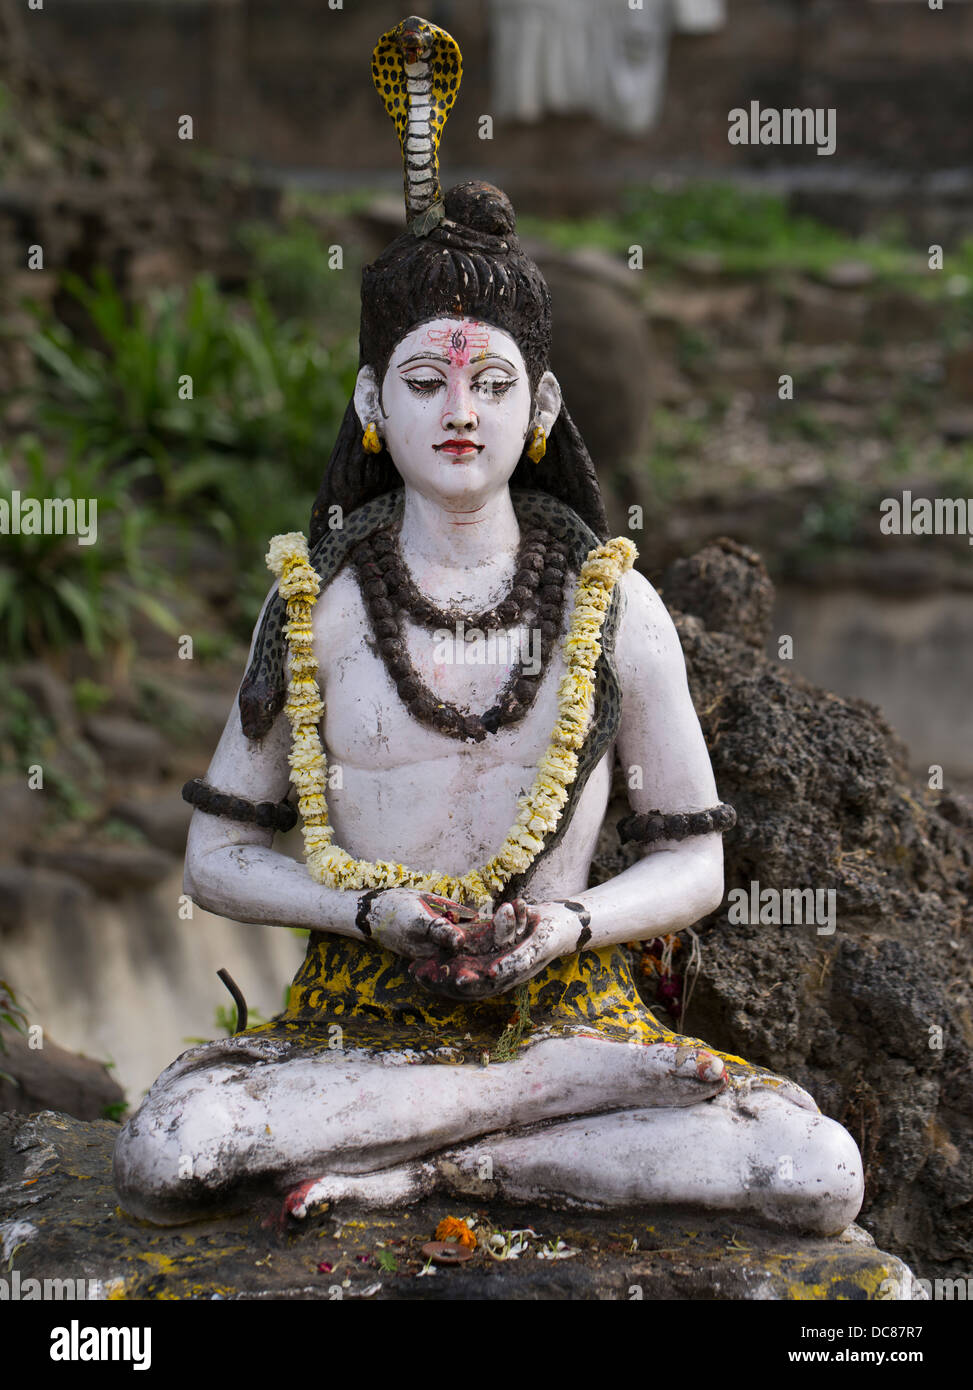 Statue of Lord Shiva, Hindu Deity - Life on the banks of the Ganges River - Varanasi, India - Stock Image